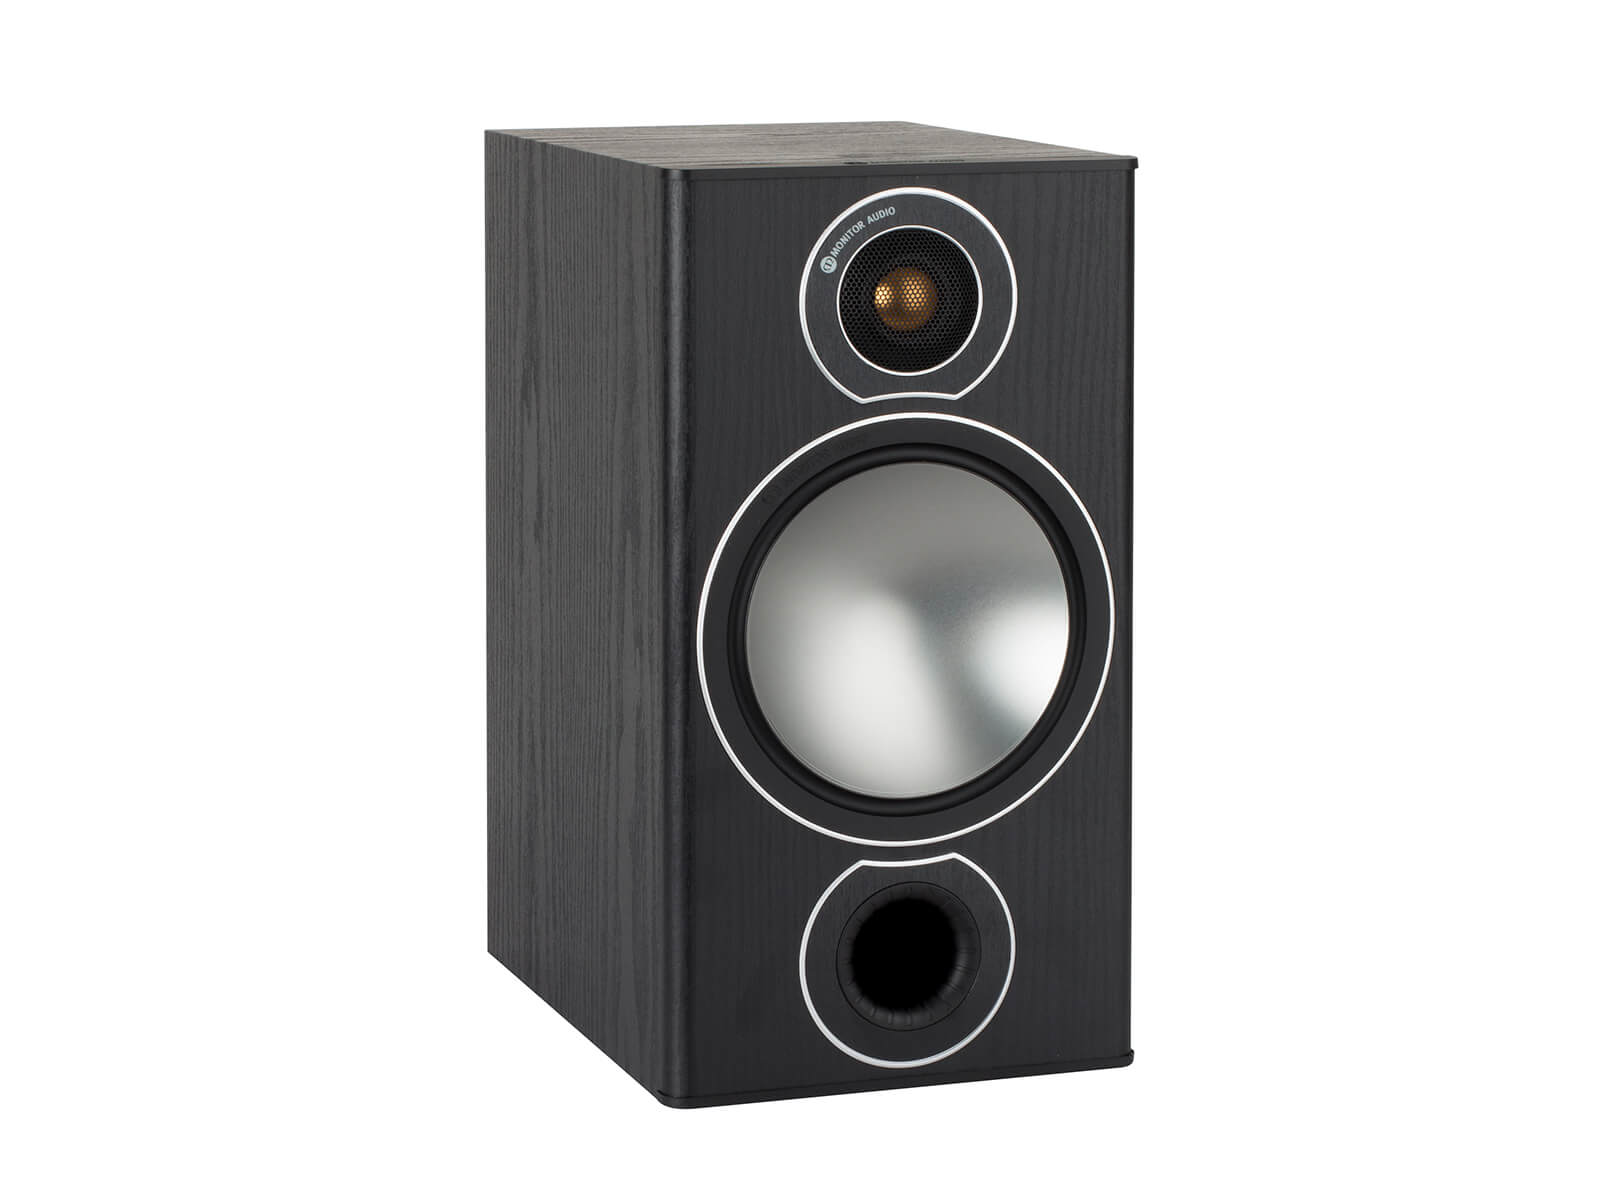 Bronze 2, grille-less bookshelf speakers, with a black oak vinyl finish.